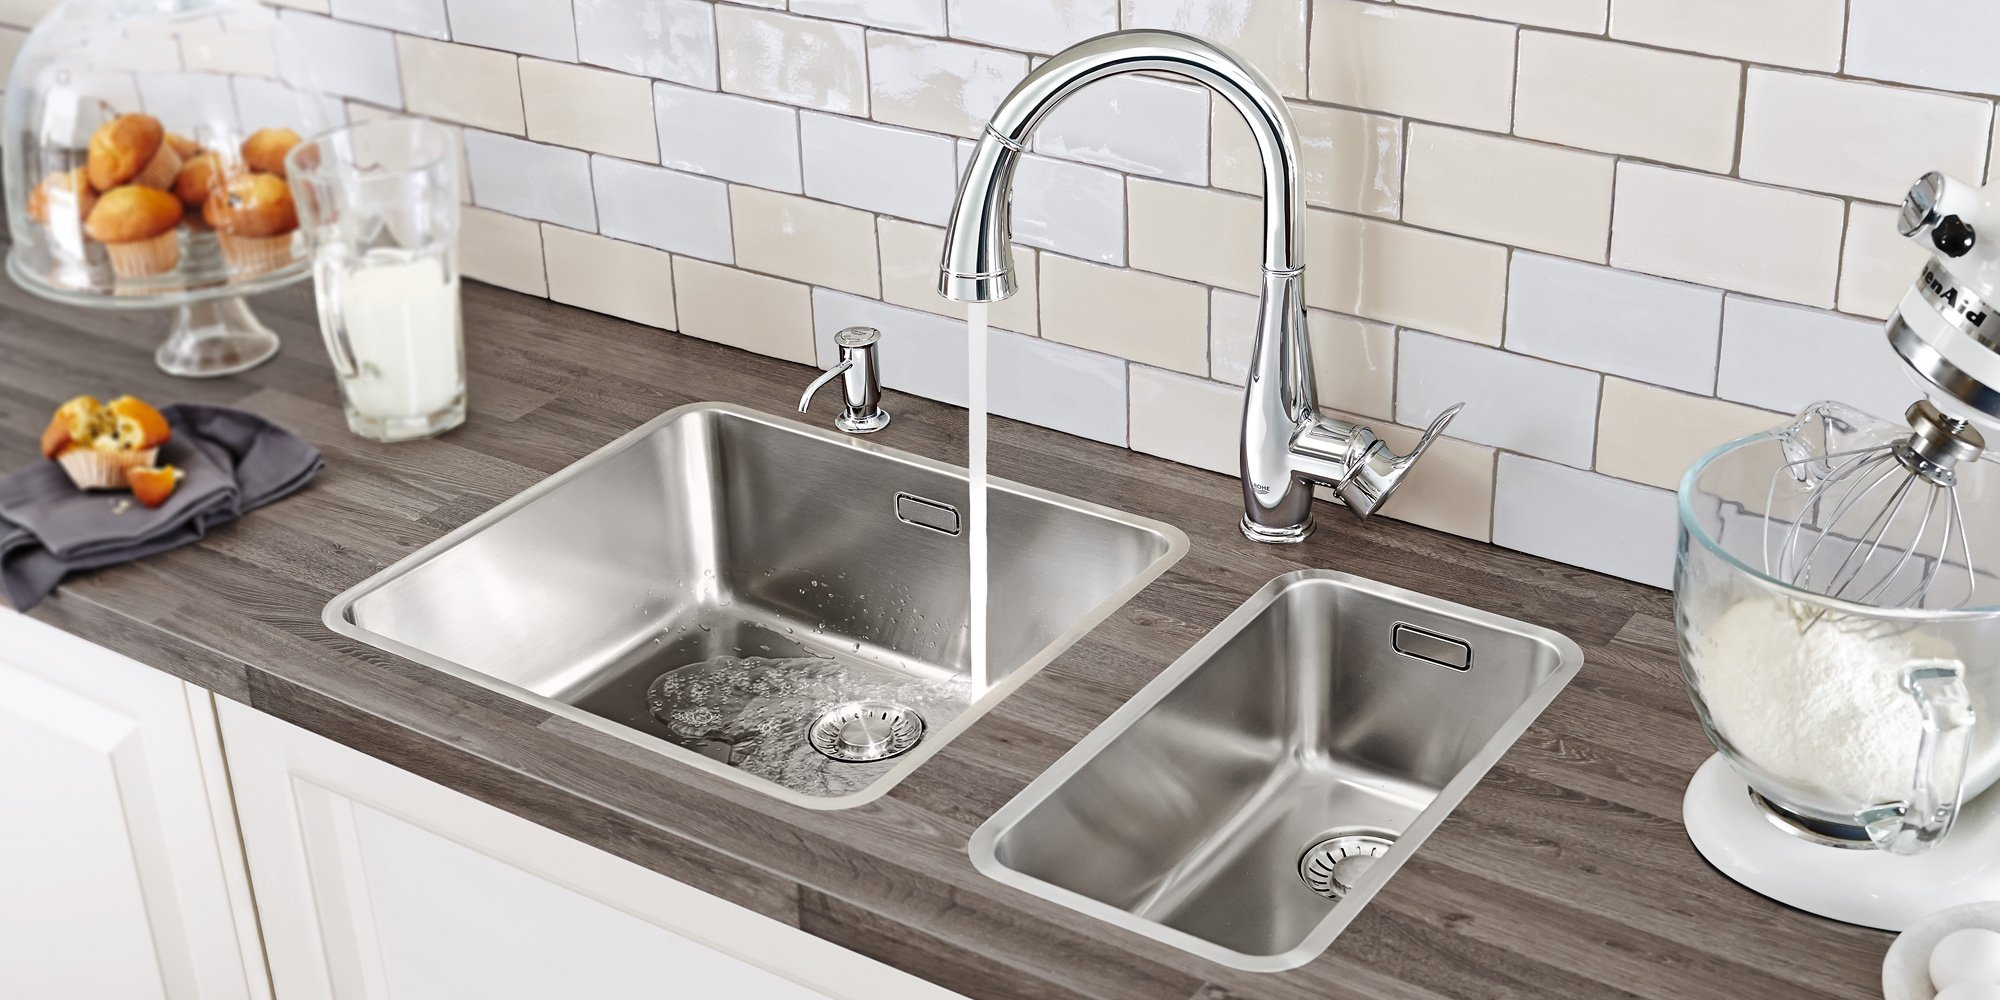 9 Types of Kitchen Sinks to Consider for Your Home